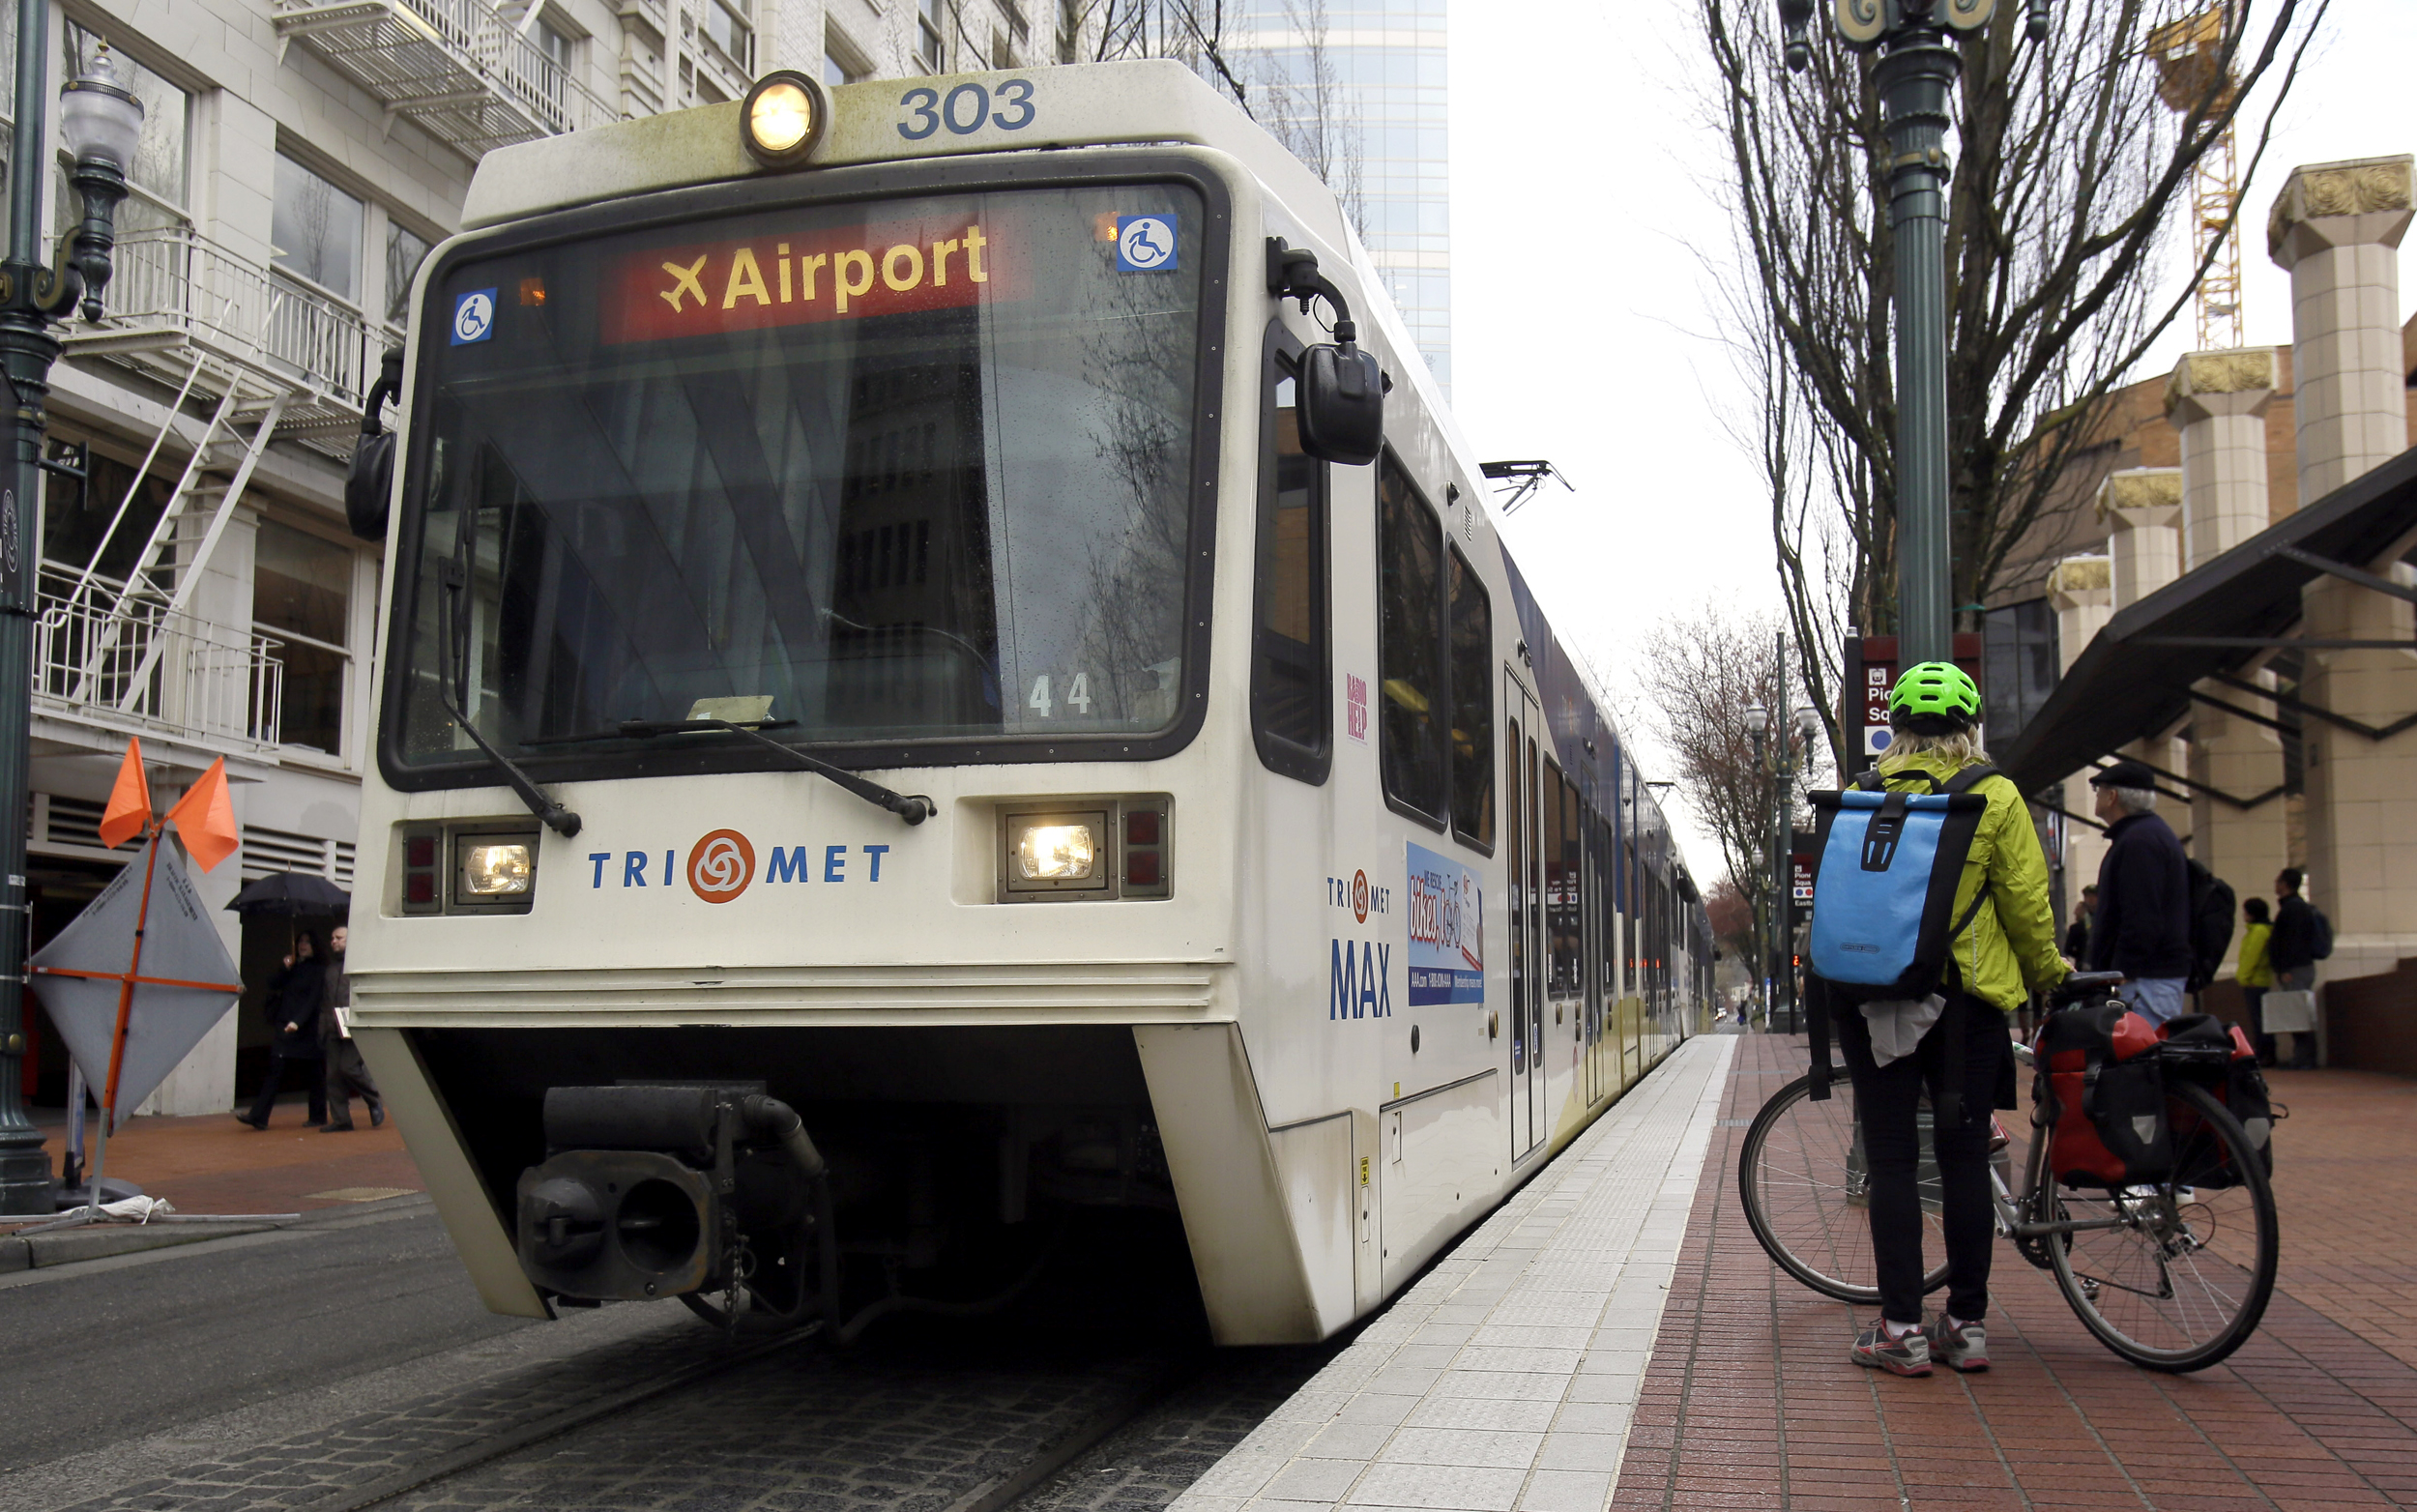 Man accused of repeatedly assaulting female riders banned for life from Portland buses, trains